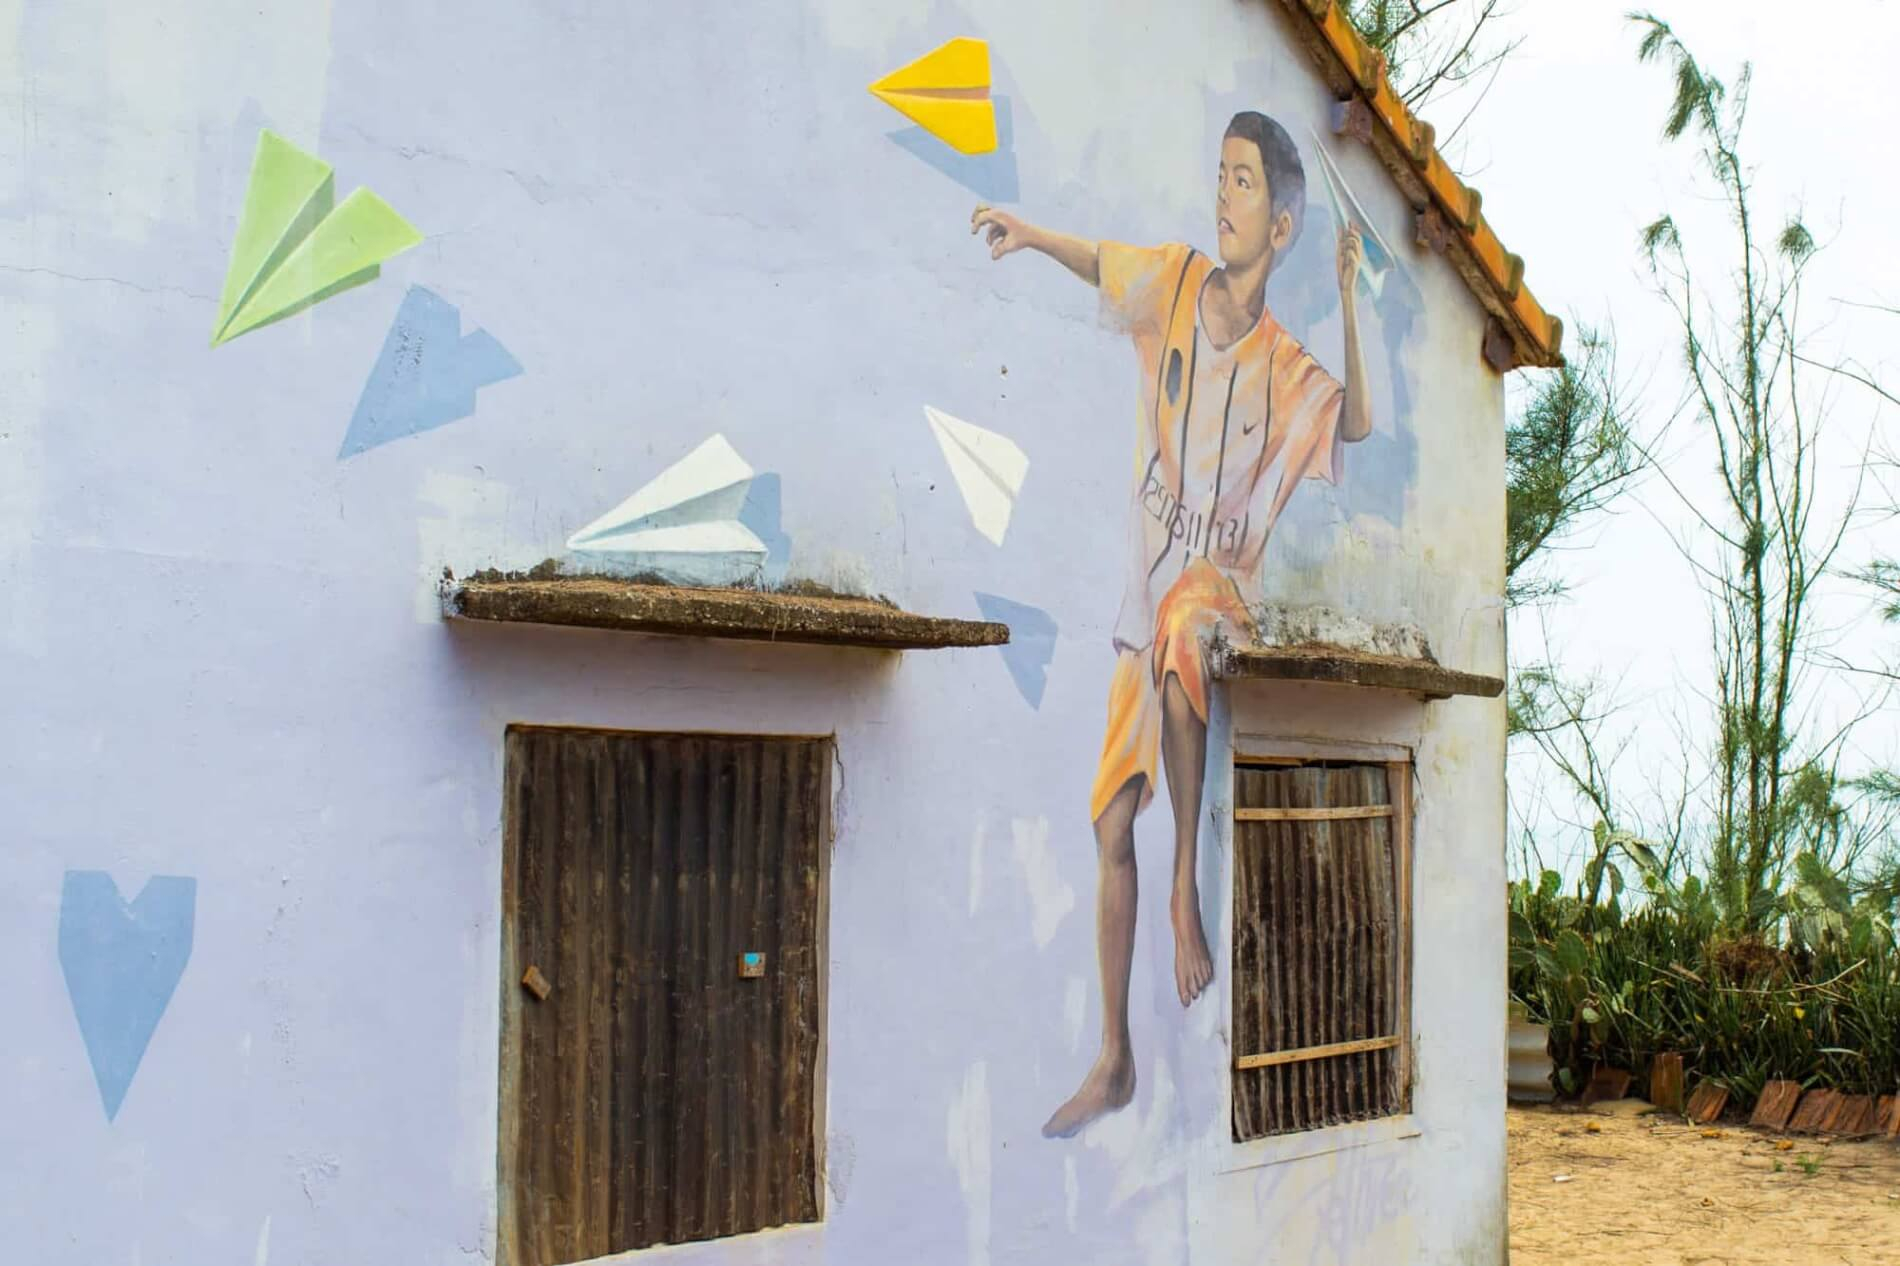 mural of a boy and paper airplanes